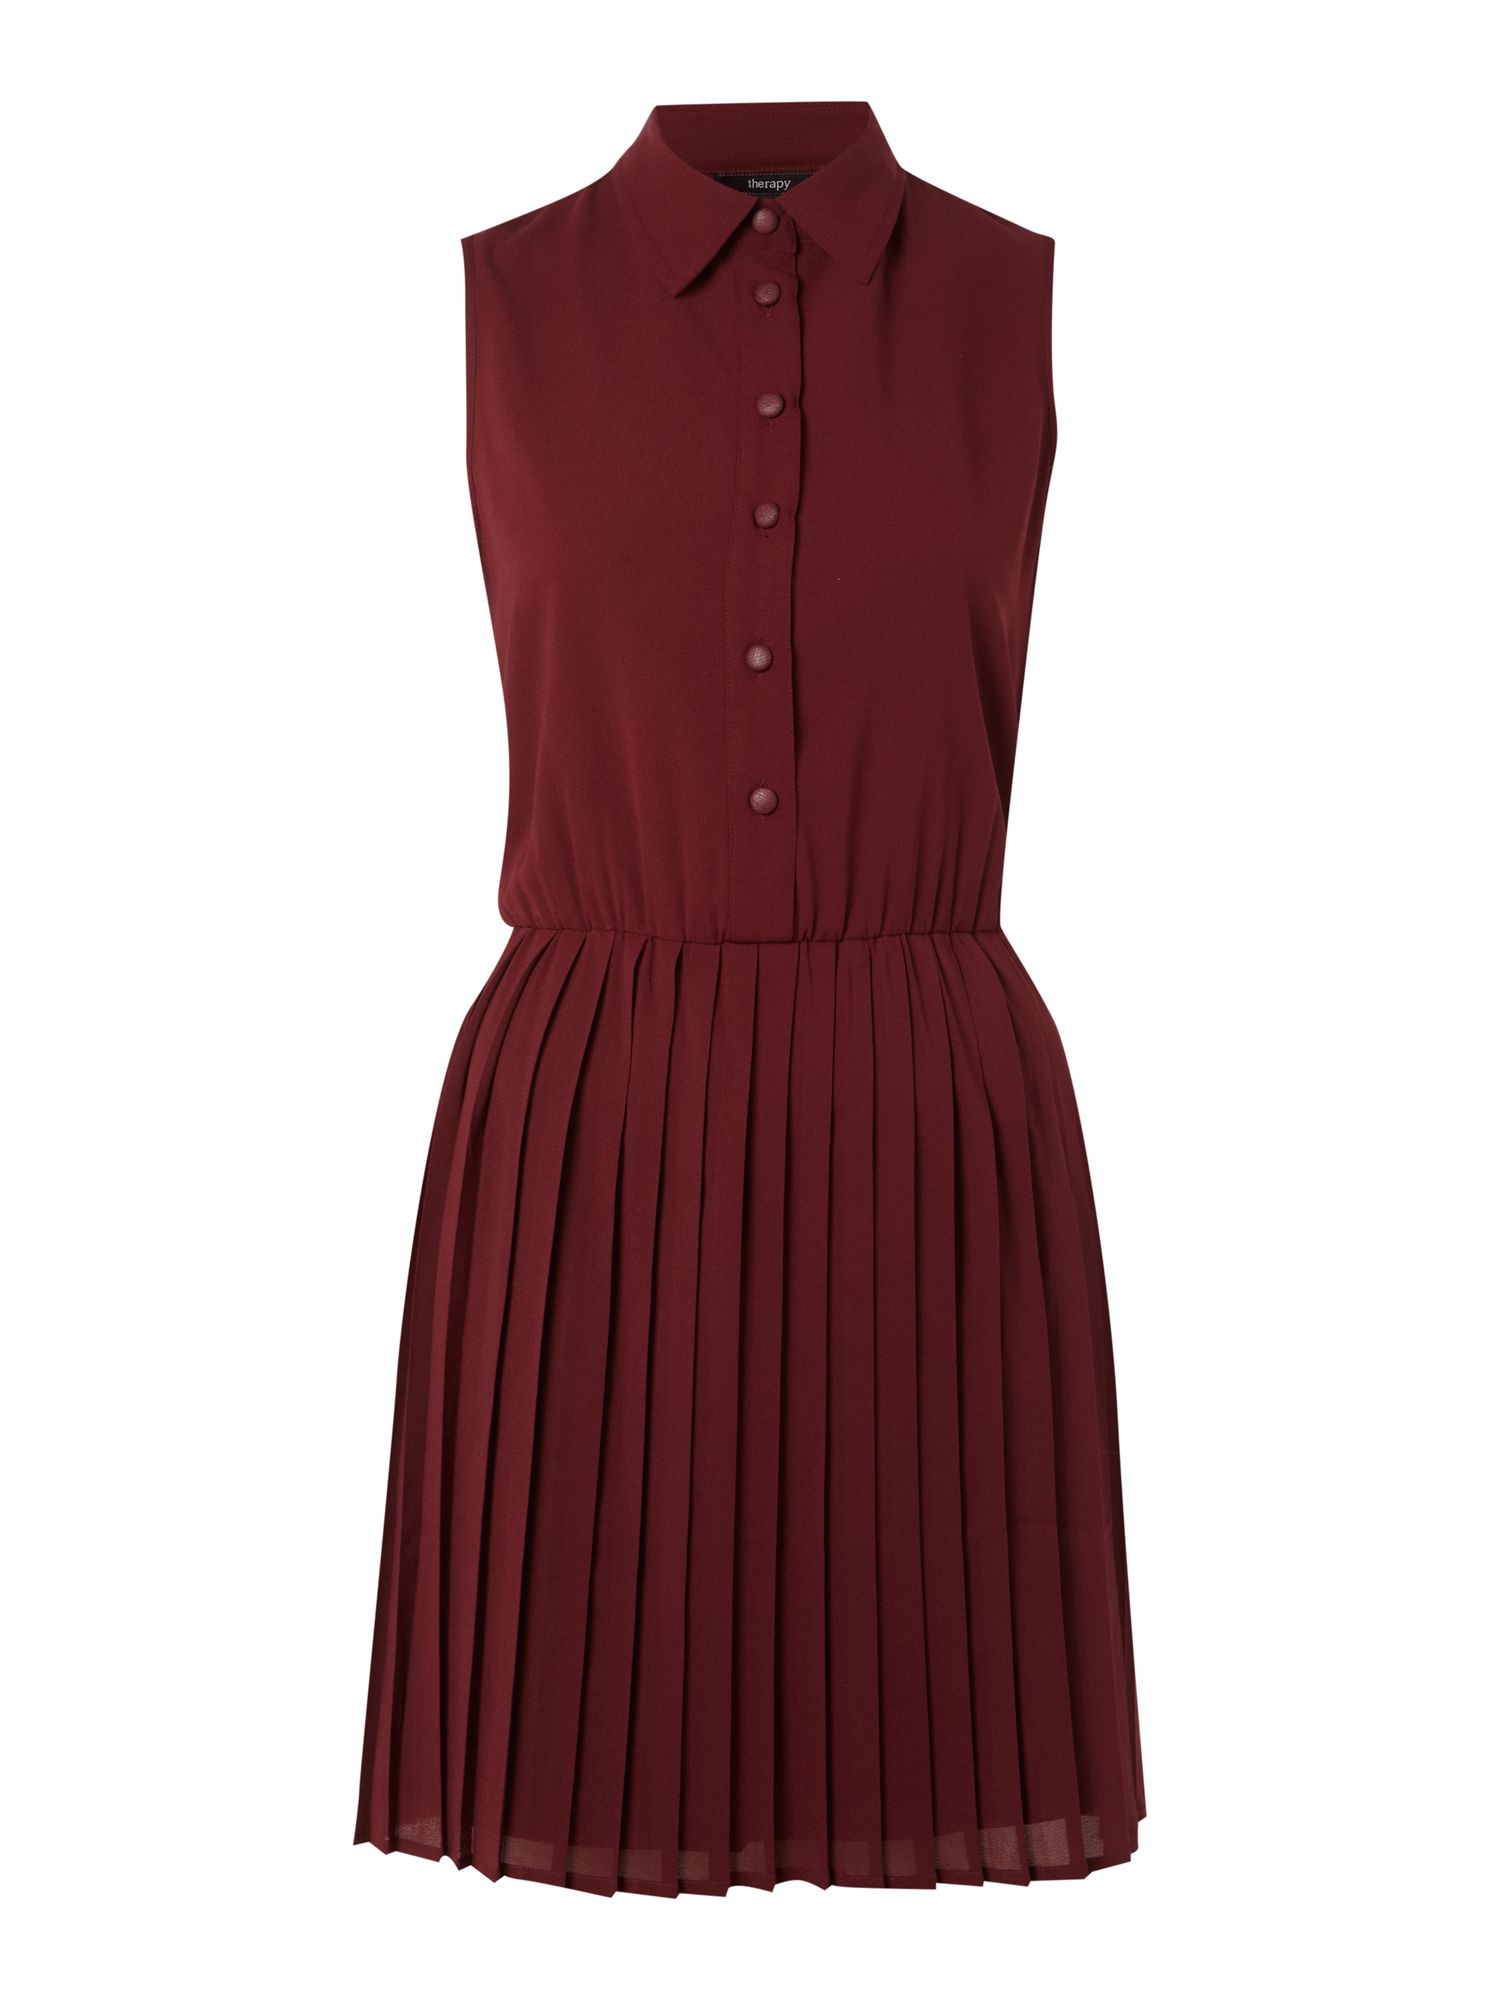 Pleat skirt dress